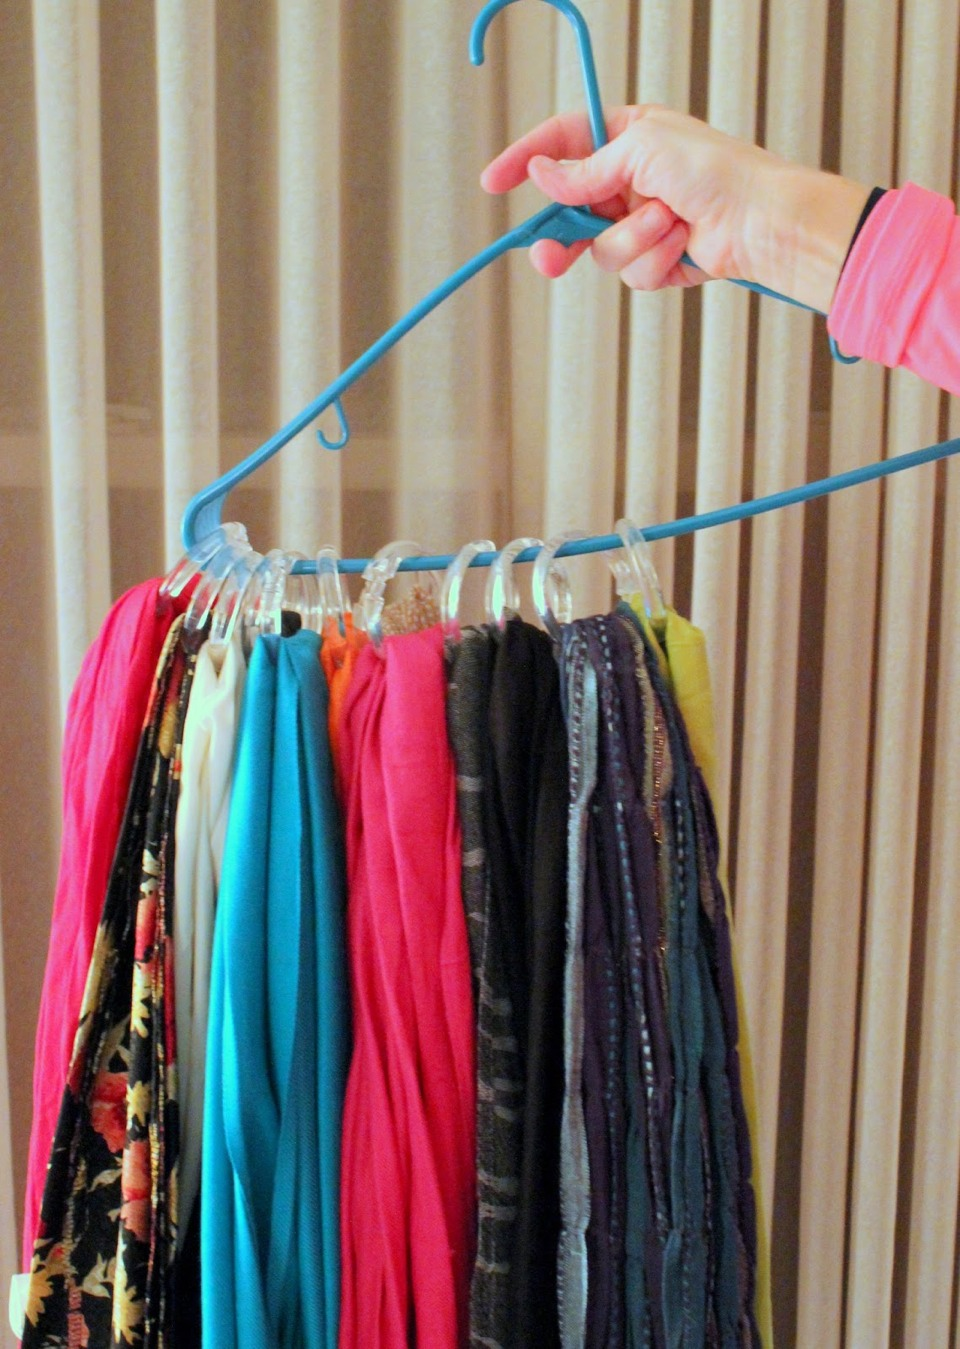 Scarf storage idea! Make sure to like this tip and I will return the favor!👍